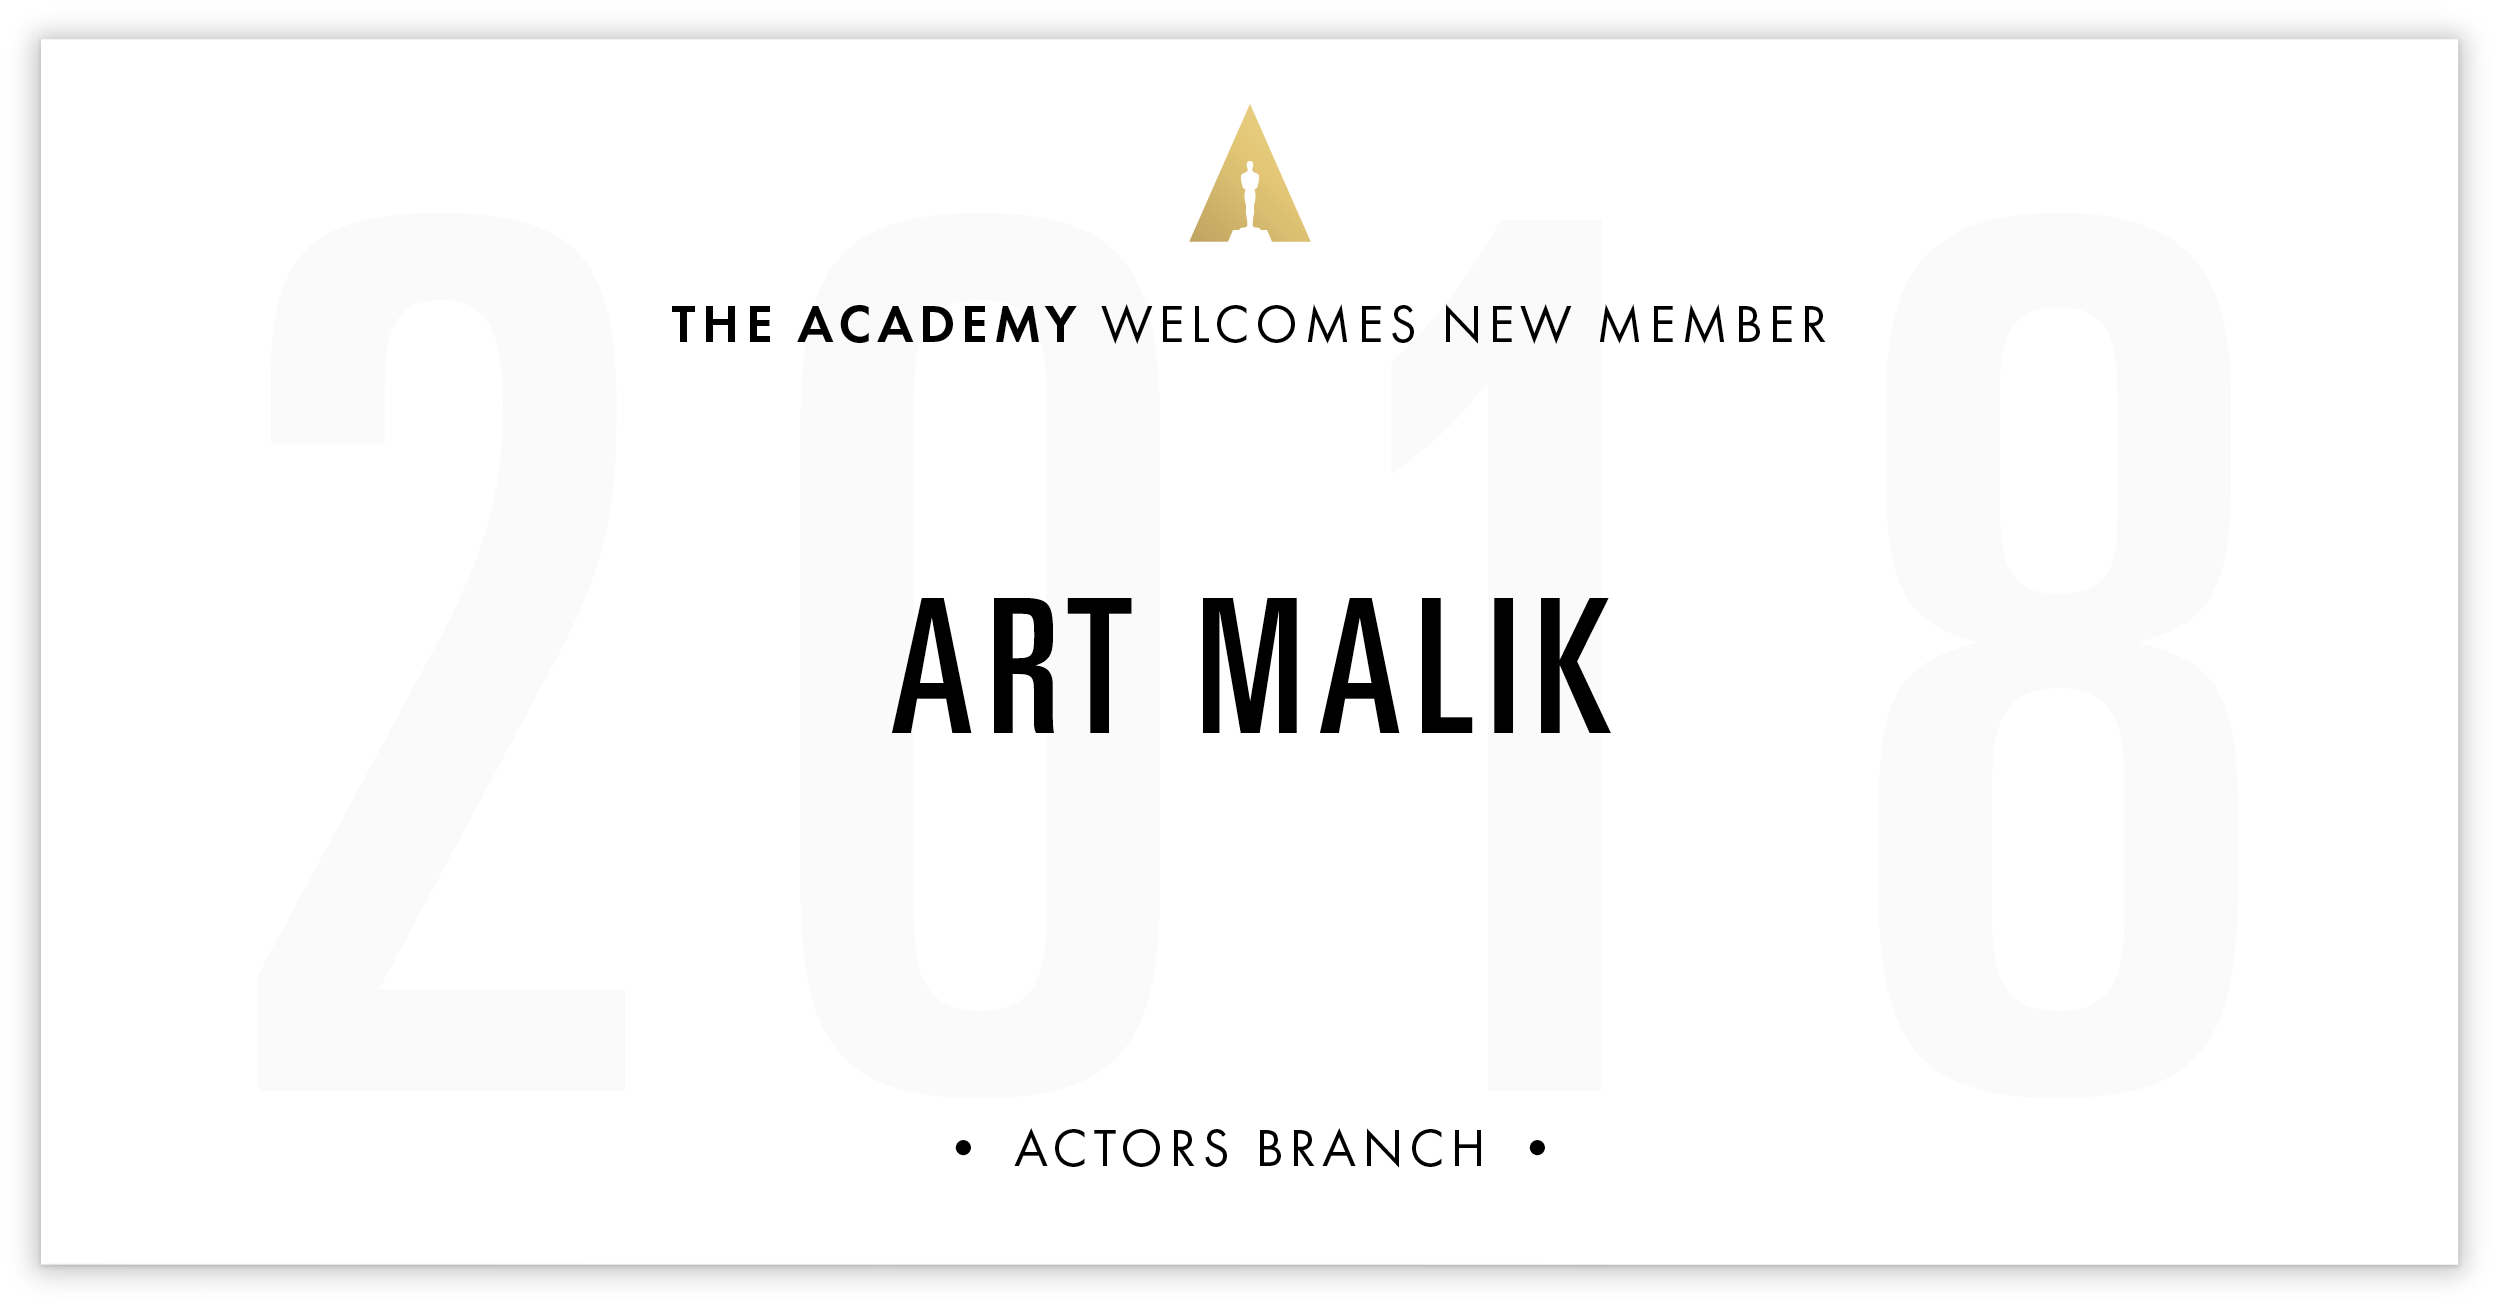 Art Malik is invited!